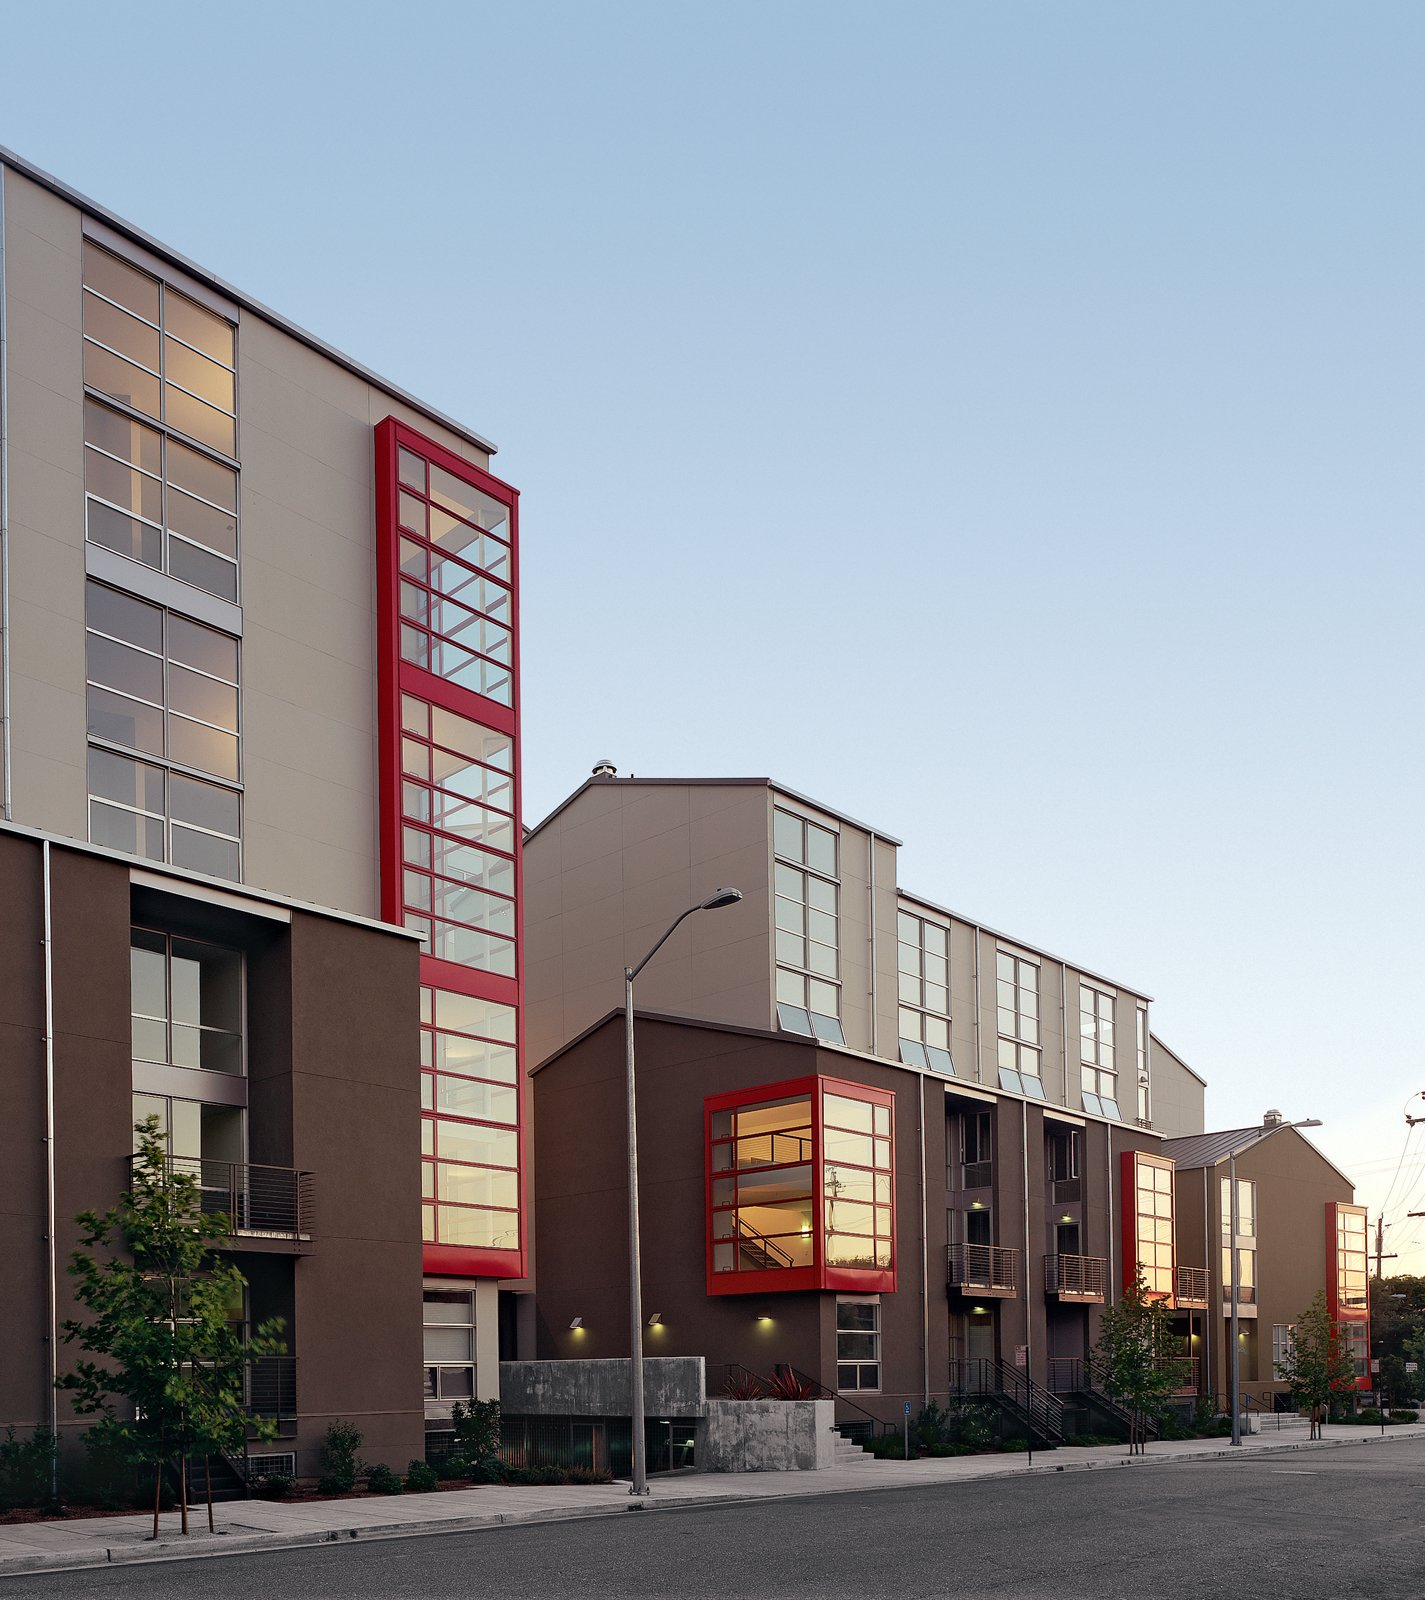 GreenCity Lofts exceeds California Title 24 energy requirements by 15 percent.  Photo 1 of 4 in A Green Approach